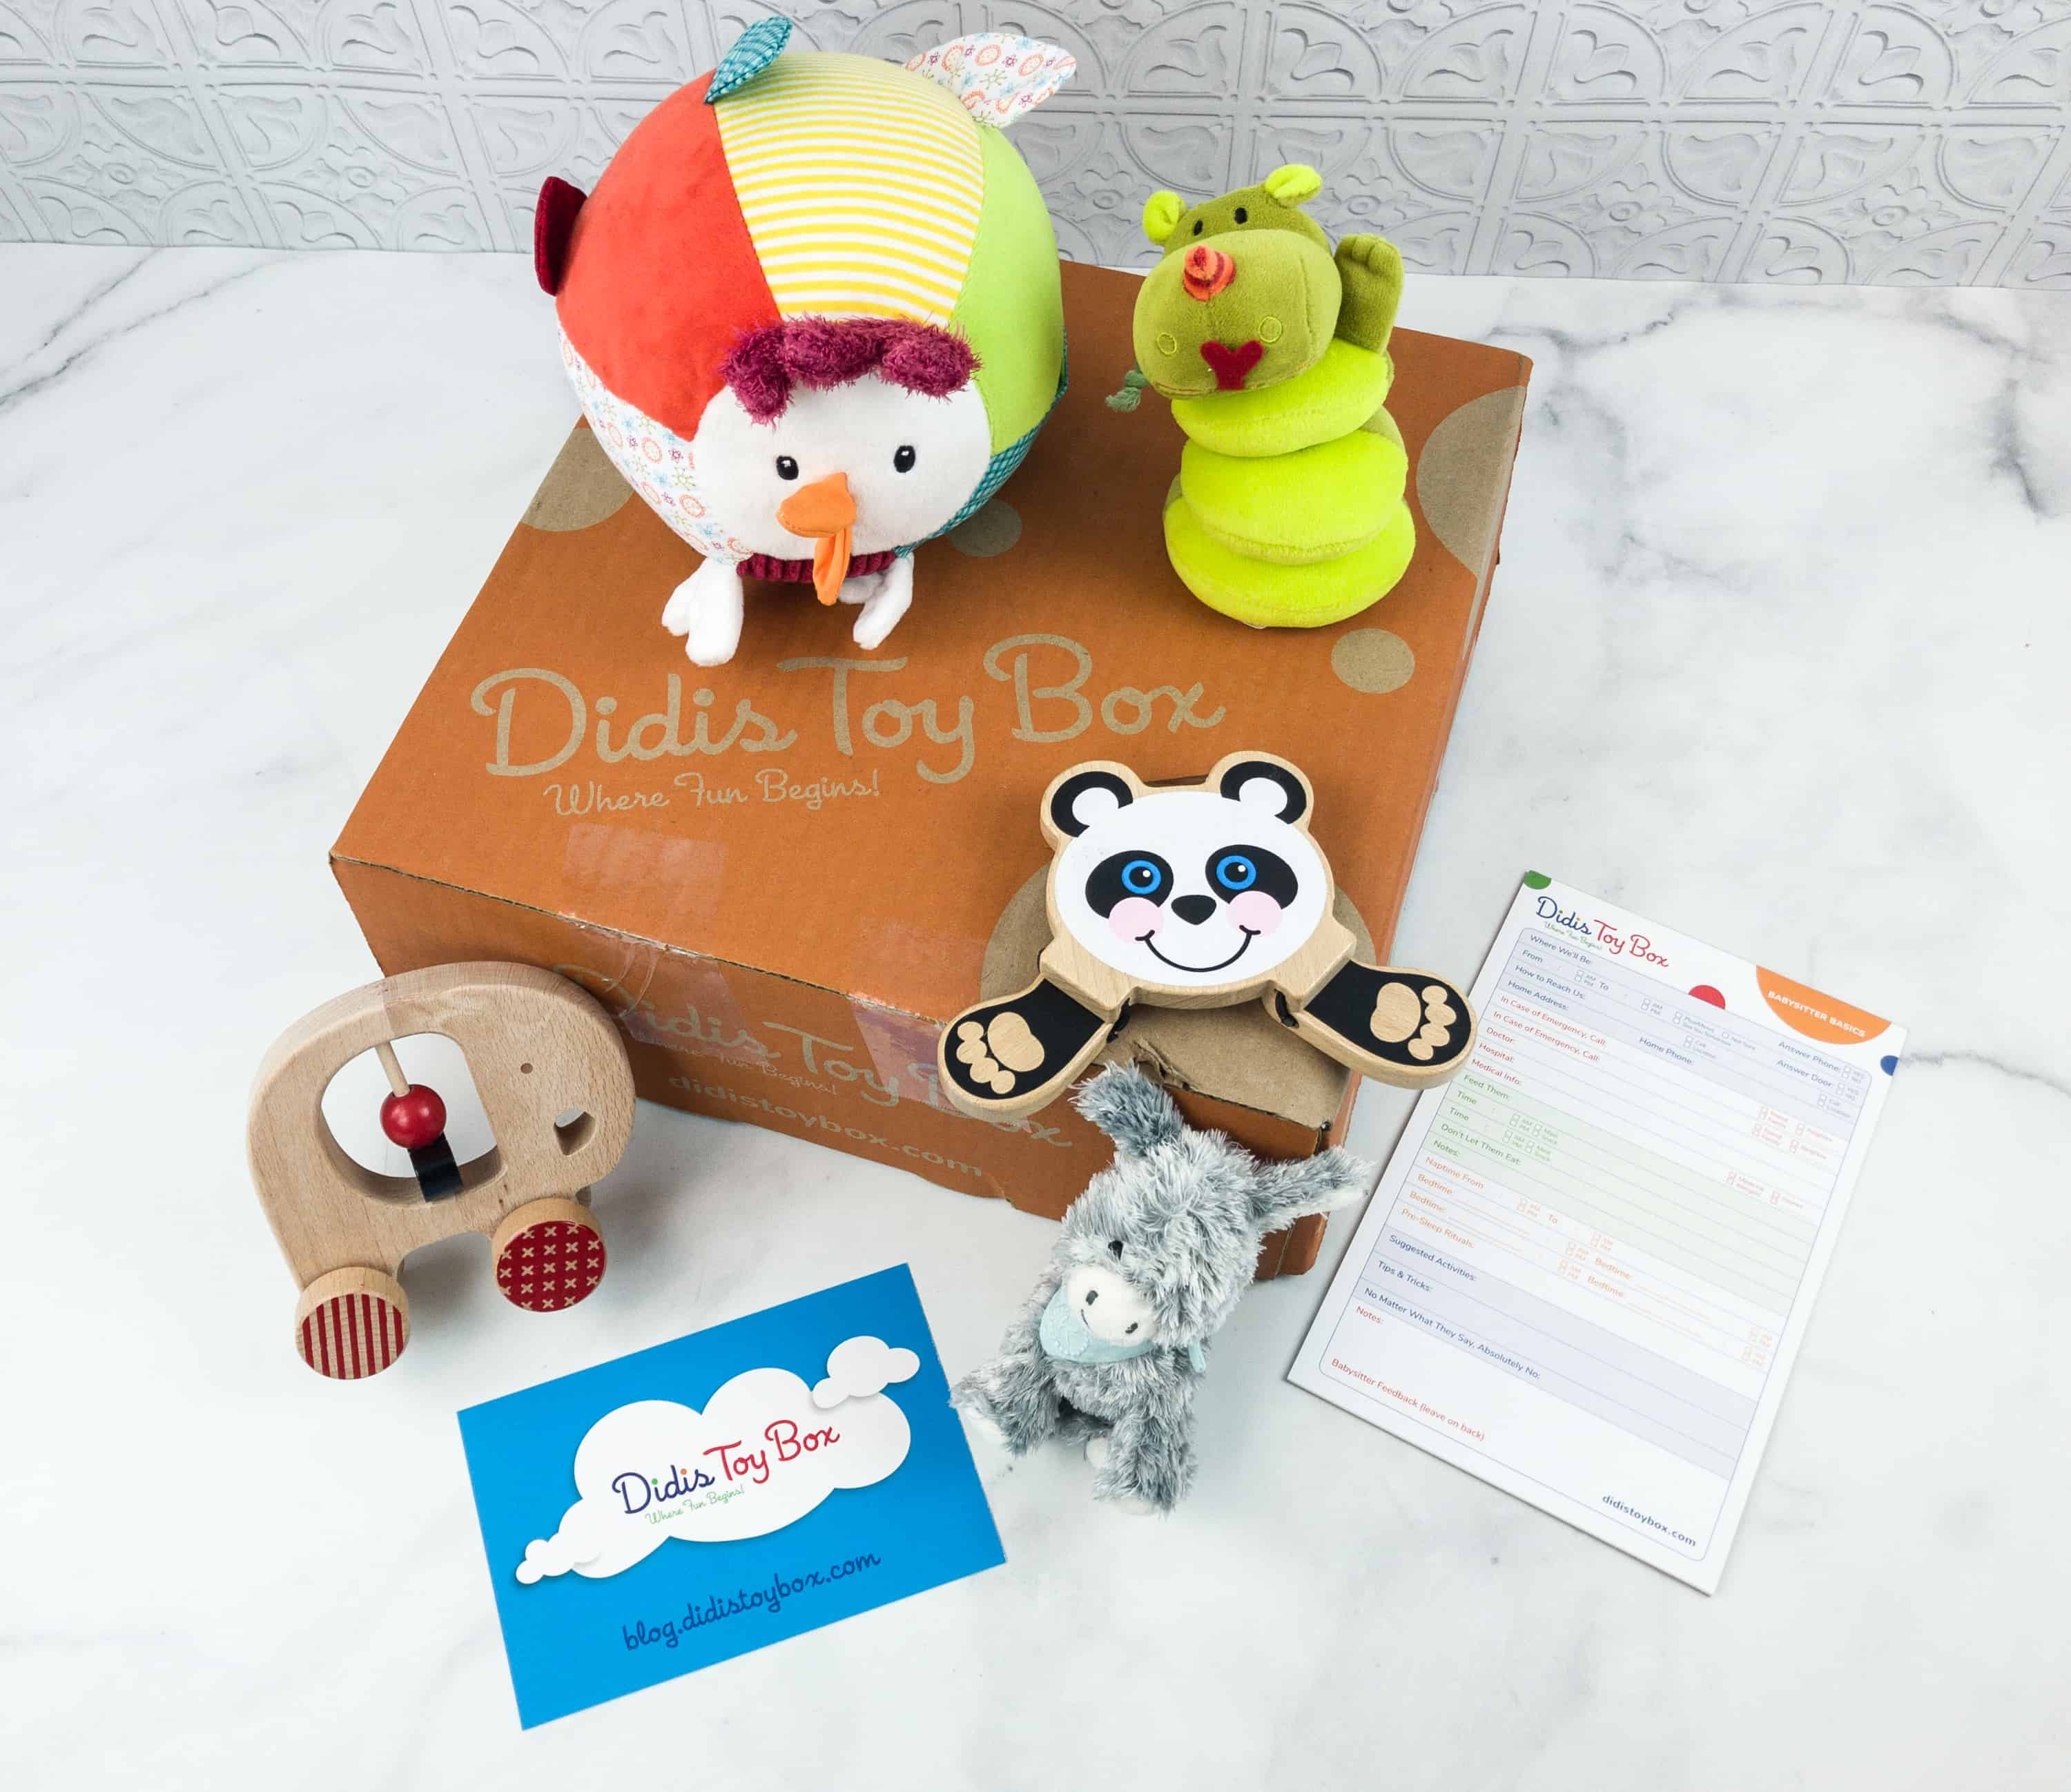 Didis Toy Box September 2018 Subscription Box Review & Coupon